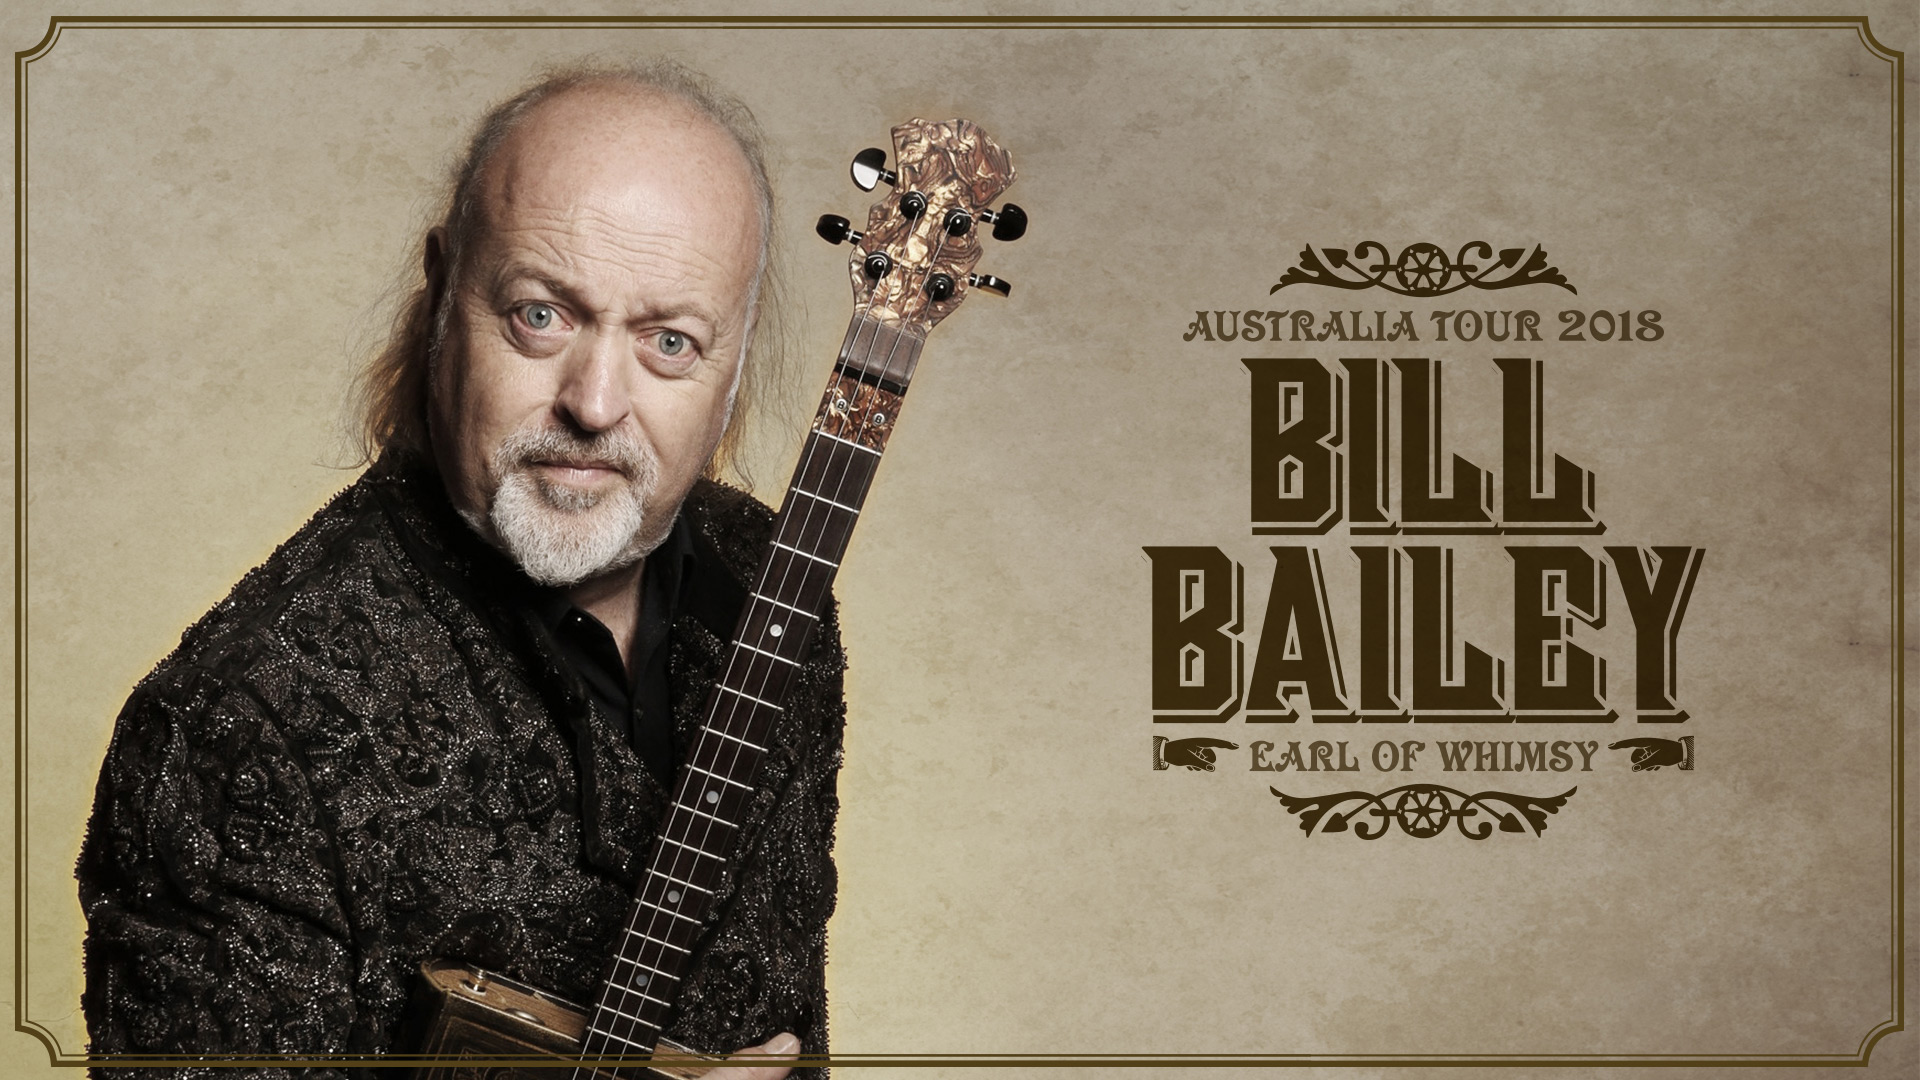 Promotional image of Bill Bailey